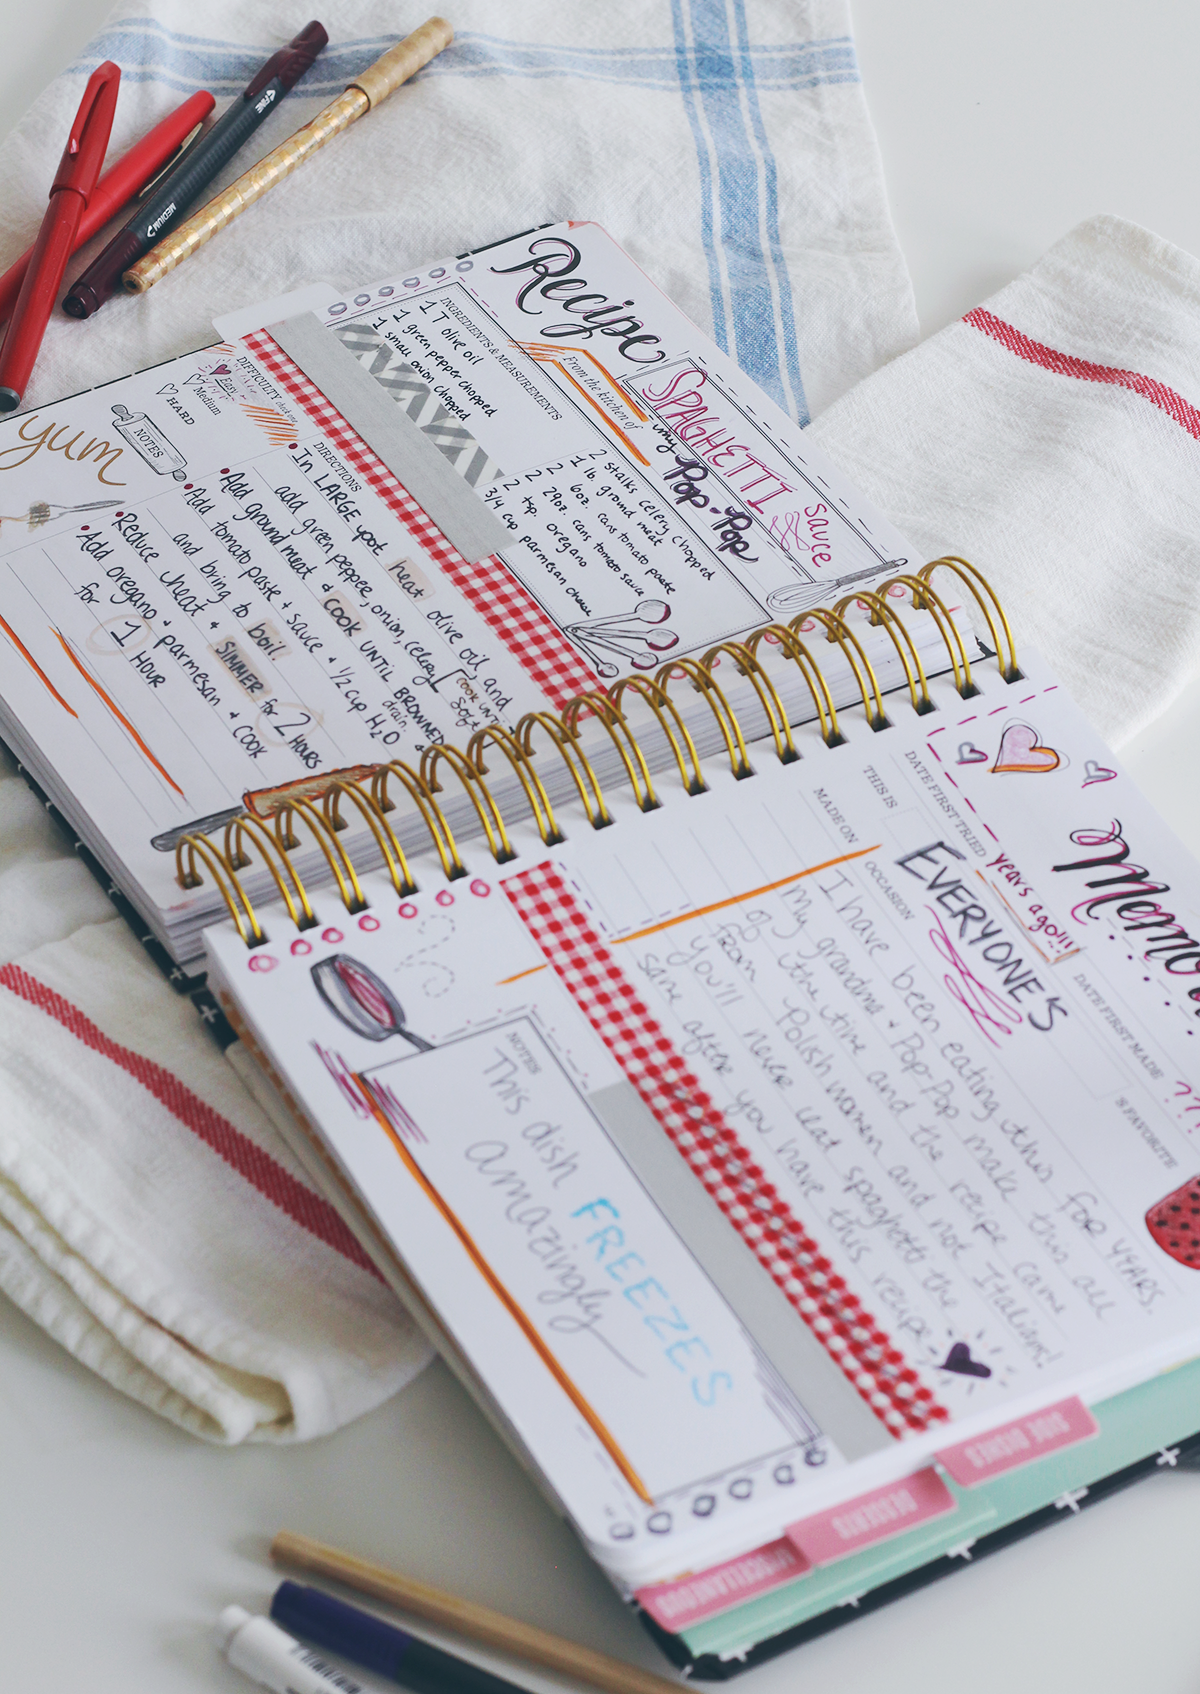 Use scrapbooking and planner supplies to add recipes and memories to the pages of your Keepsake Kitchen Diary